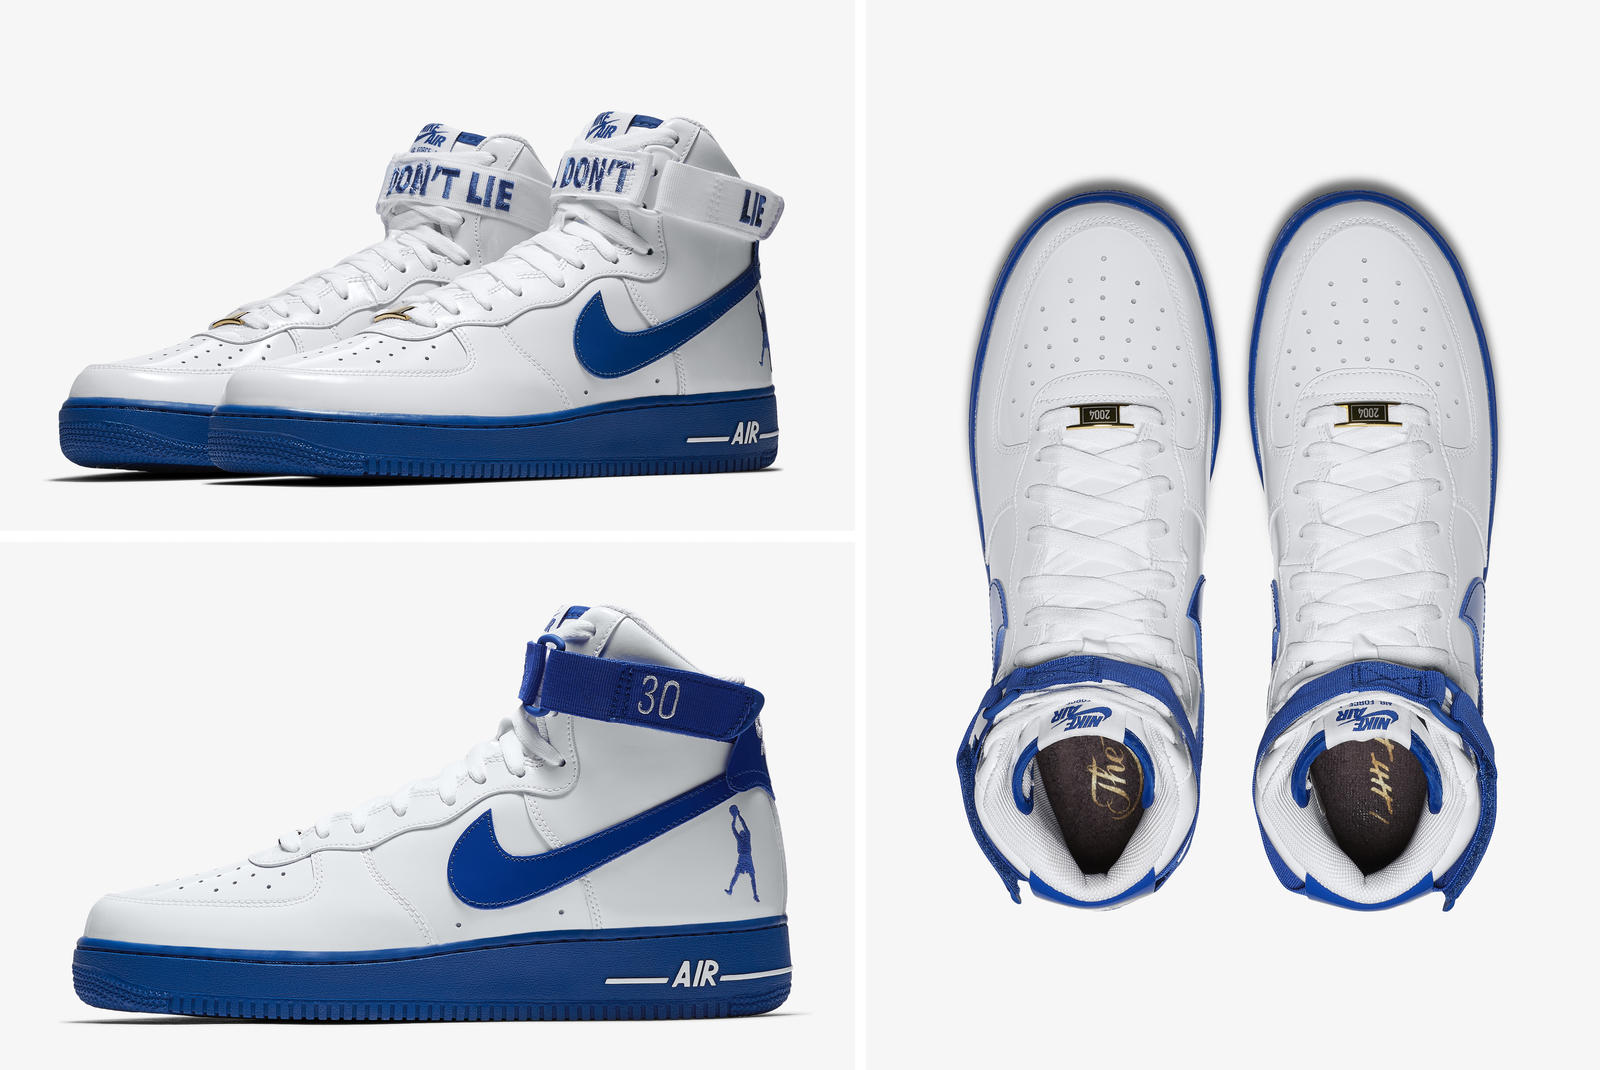 Champions 16  0. Rasheed Wallace s domination of the Lakers inspired the  Nike Air Force 1 High ... b3821ff40c